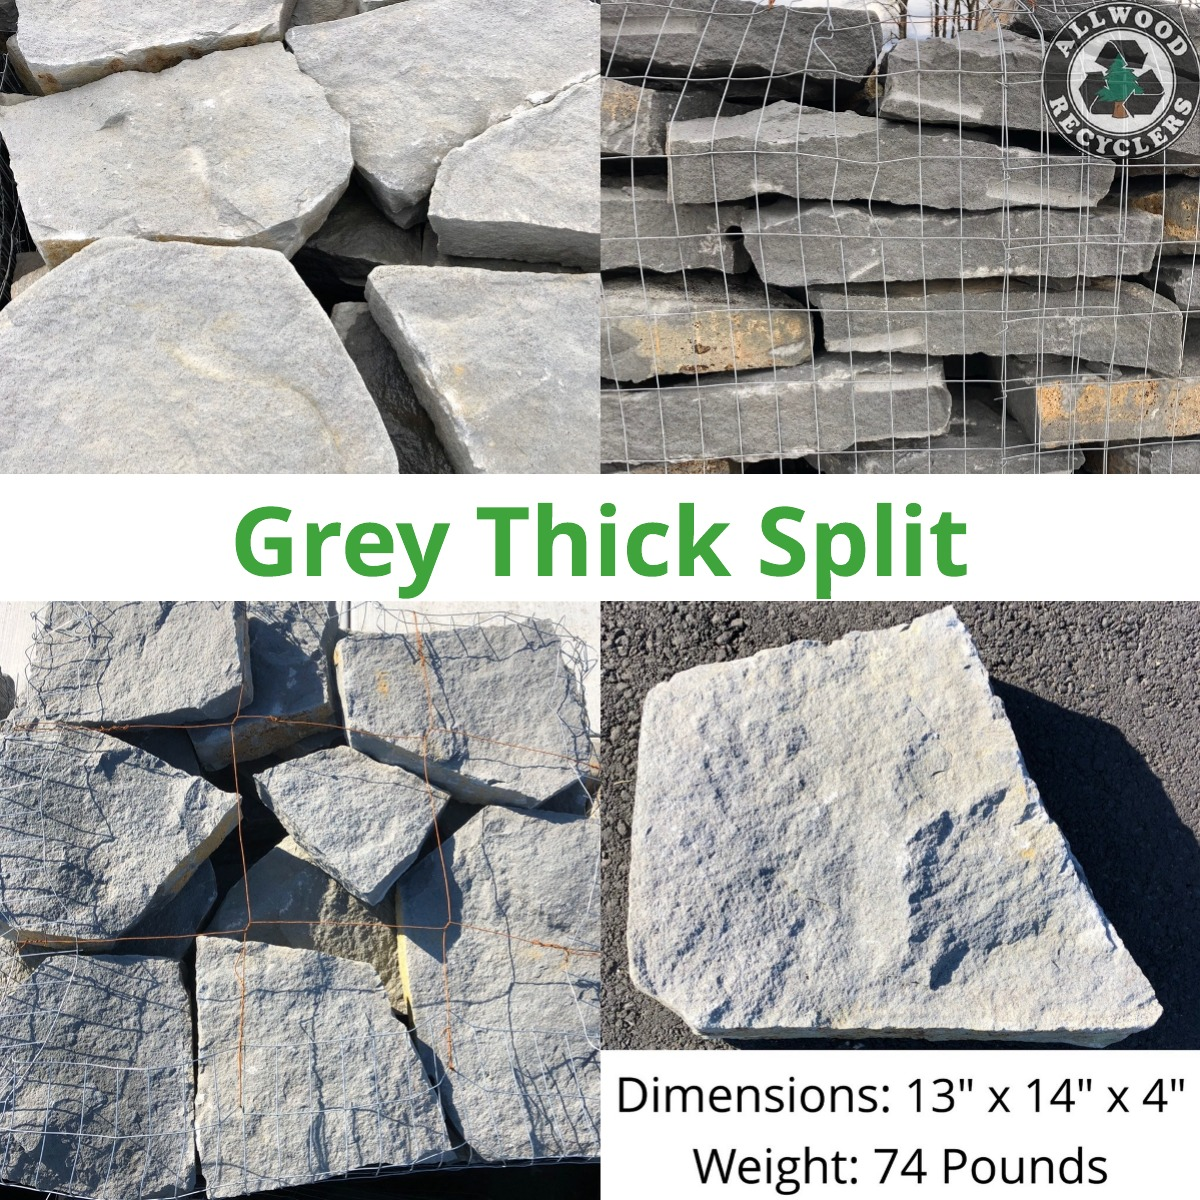 Grey Thick Split